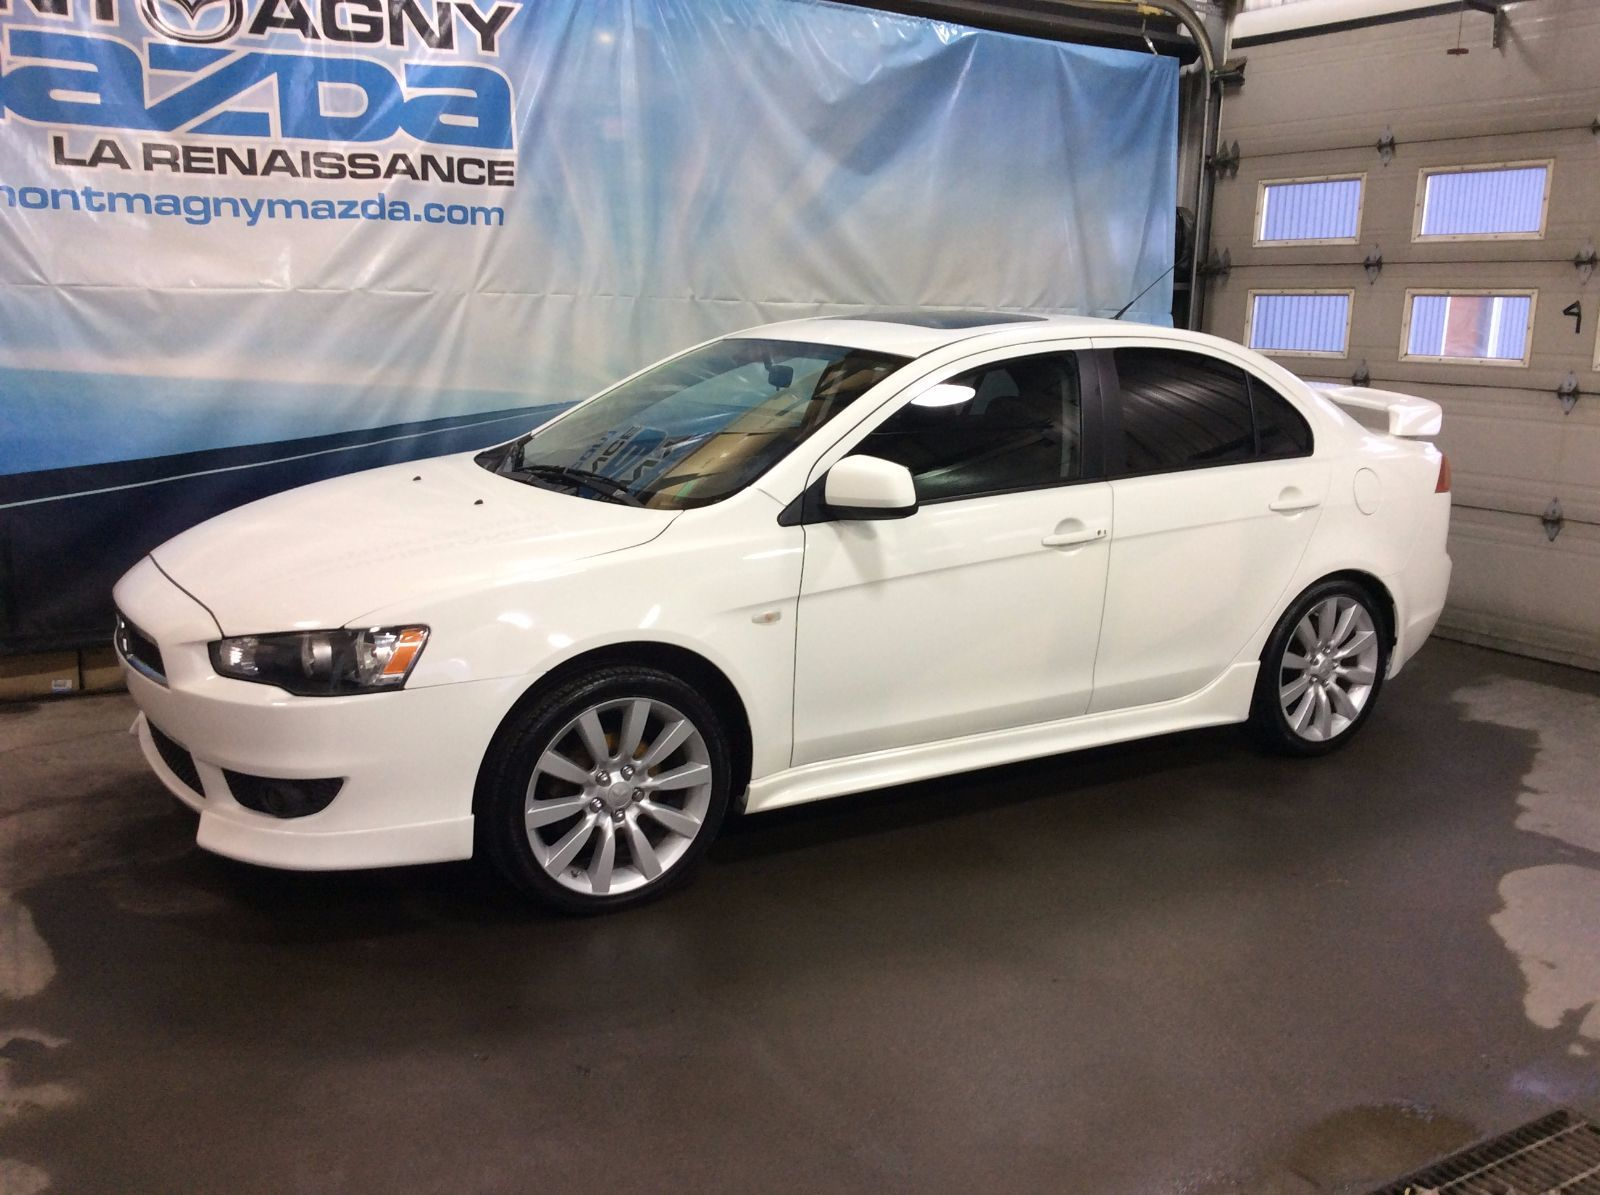 Used 2008 Mitsubishi Lancer Gts Toit In Montmagny Inventory Starter Location Mazda Quebec